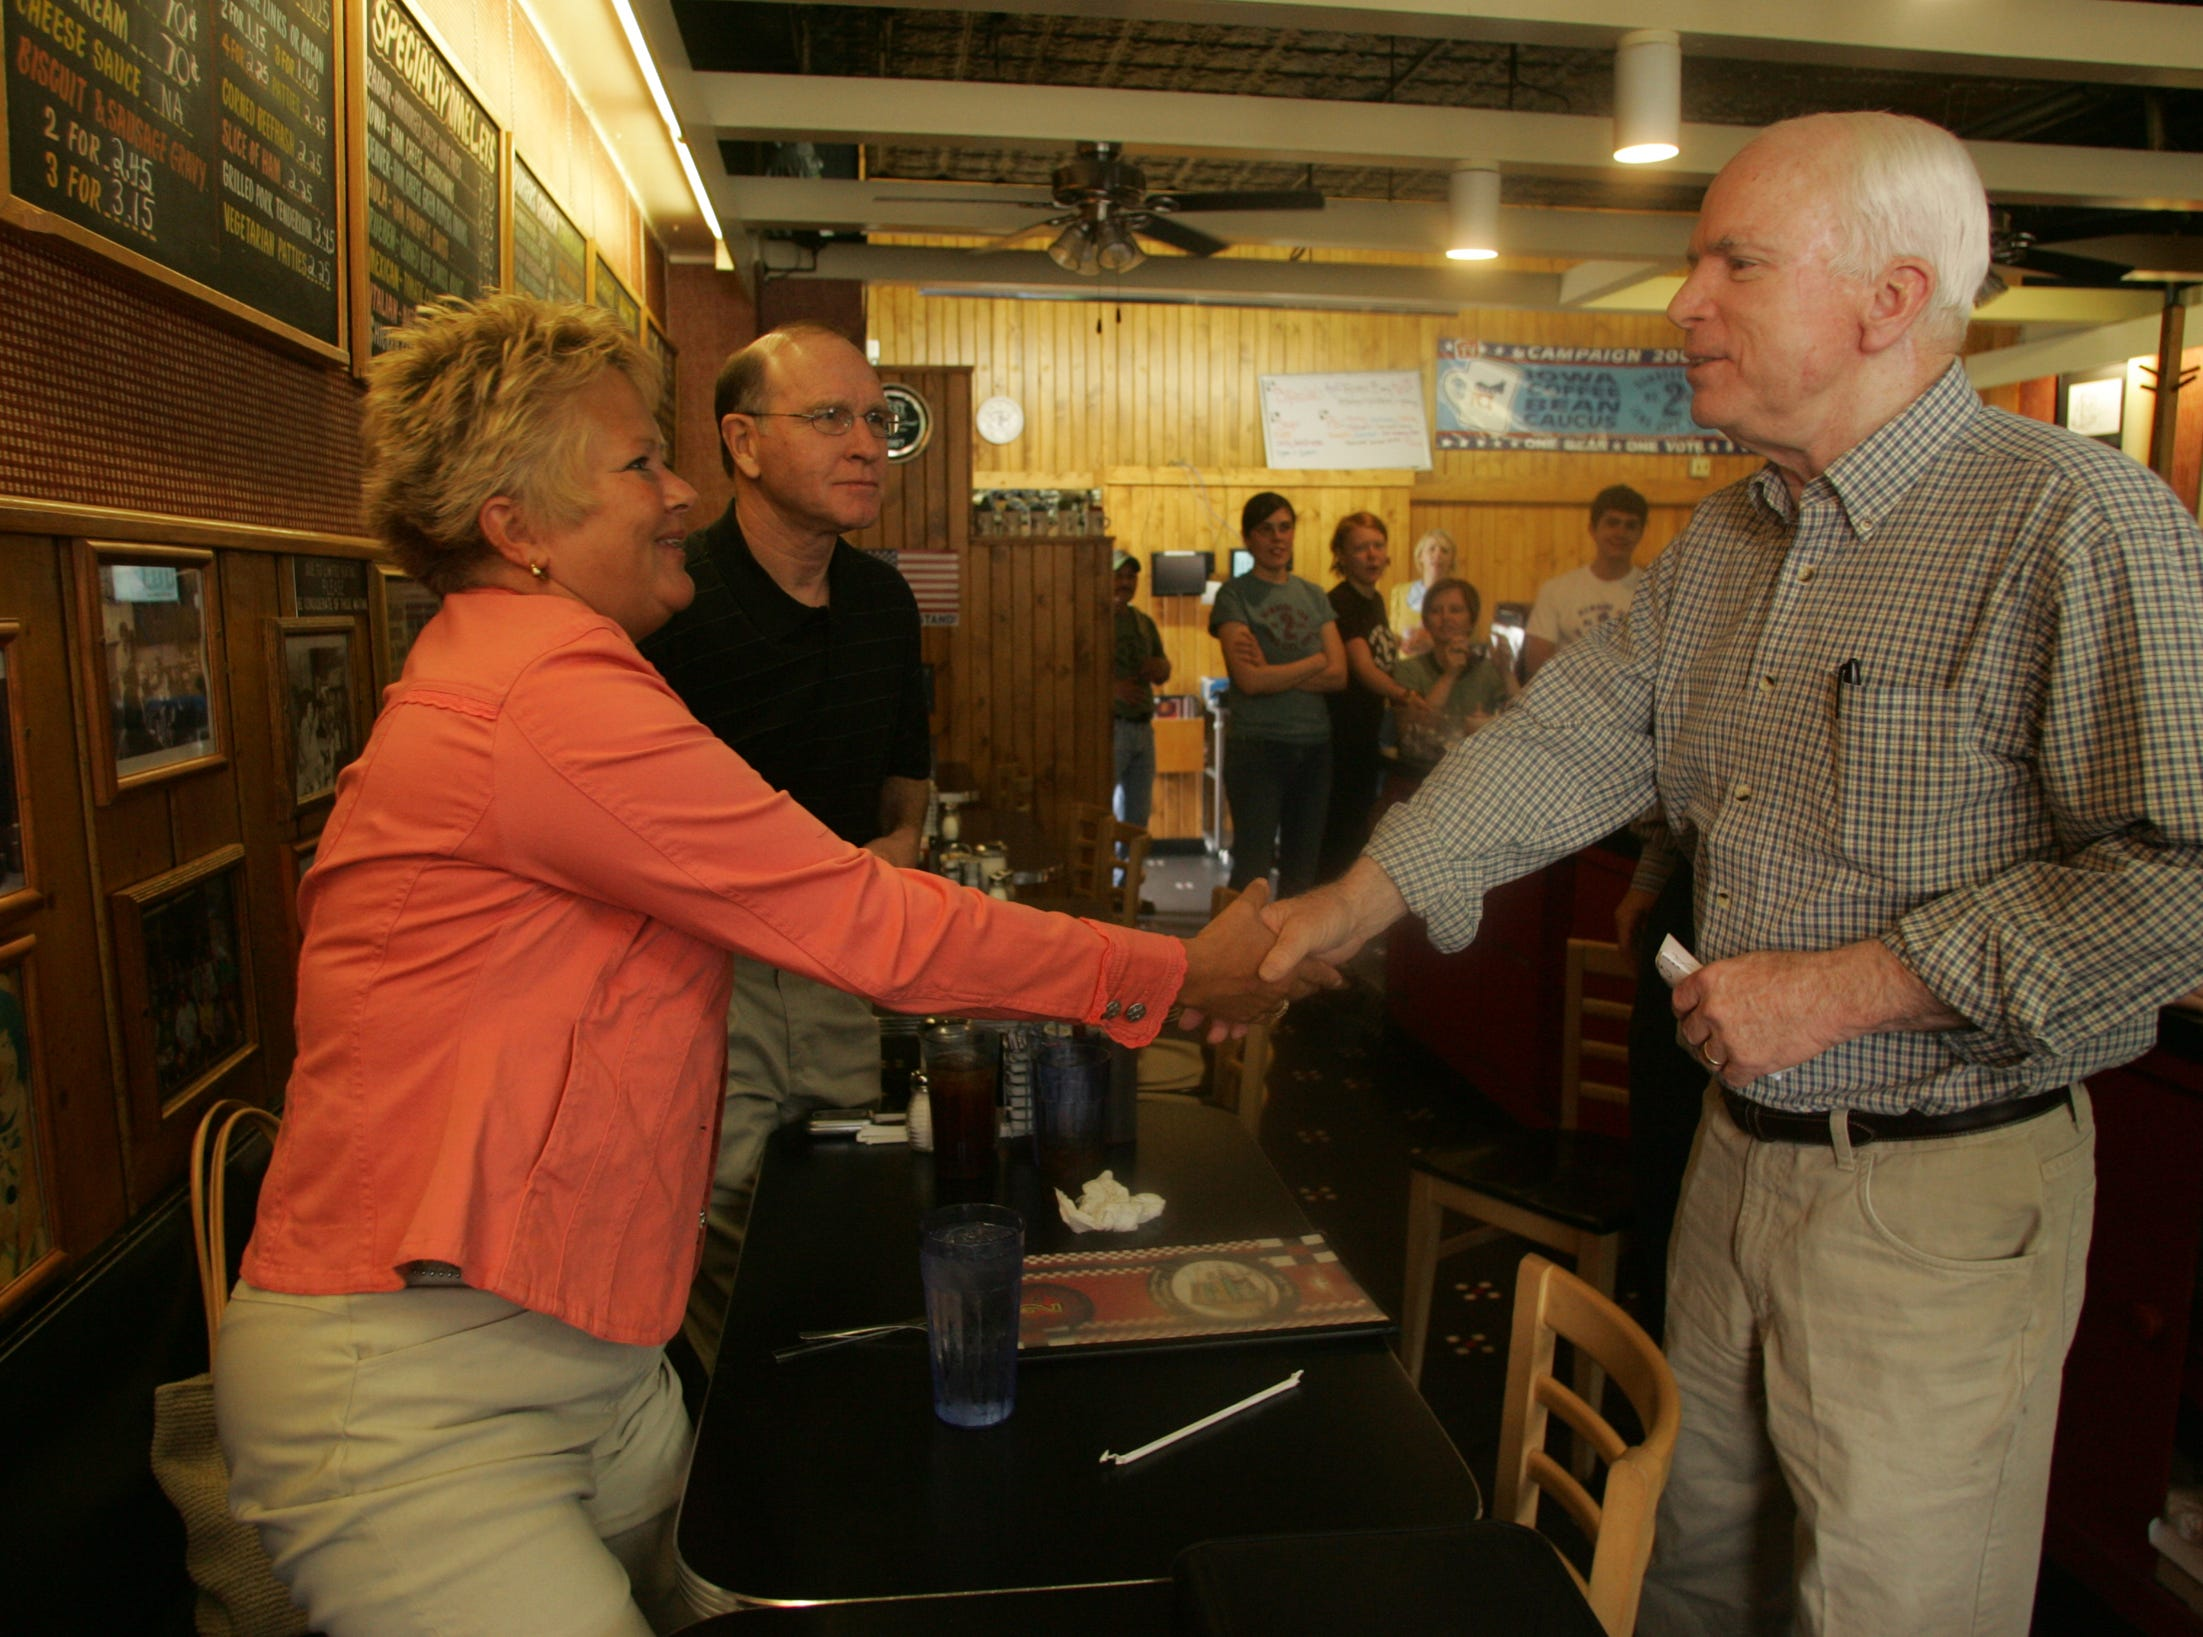 Republican presidential hopeful Sen. John McCain, R-Ariz., right, greets Kathy Gable as her husband, former University of Iowa wrestling coach Dan Gable, looks on at the Hamburg Inn No. 2 in Iowa City on May 7, 2007.